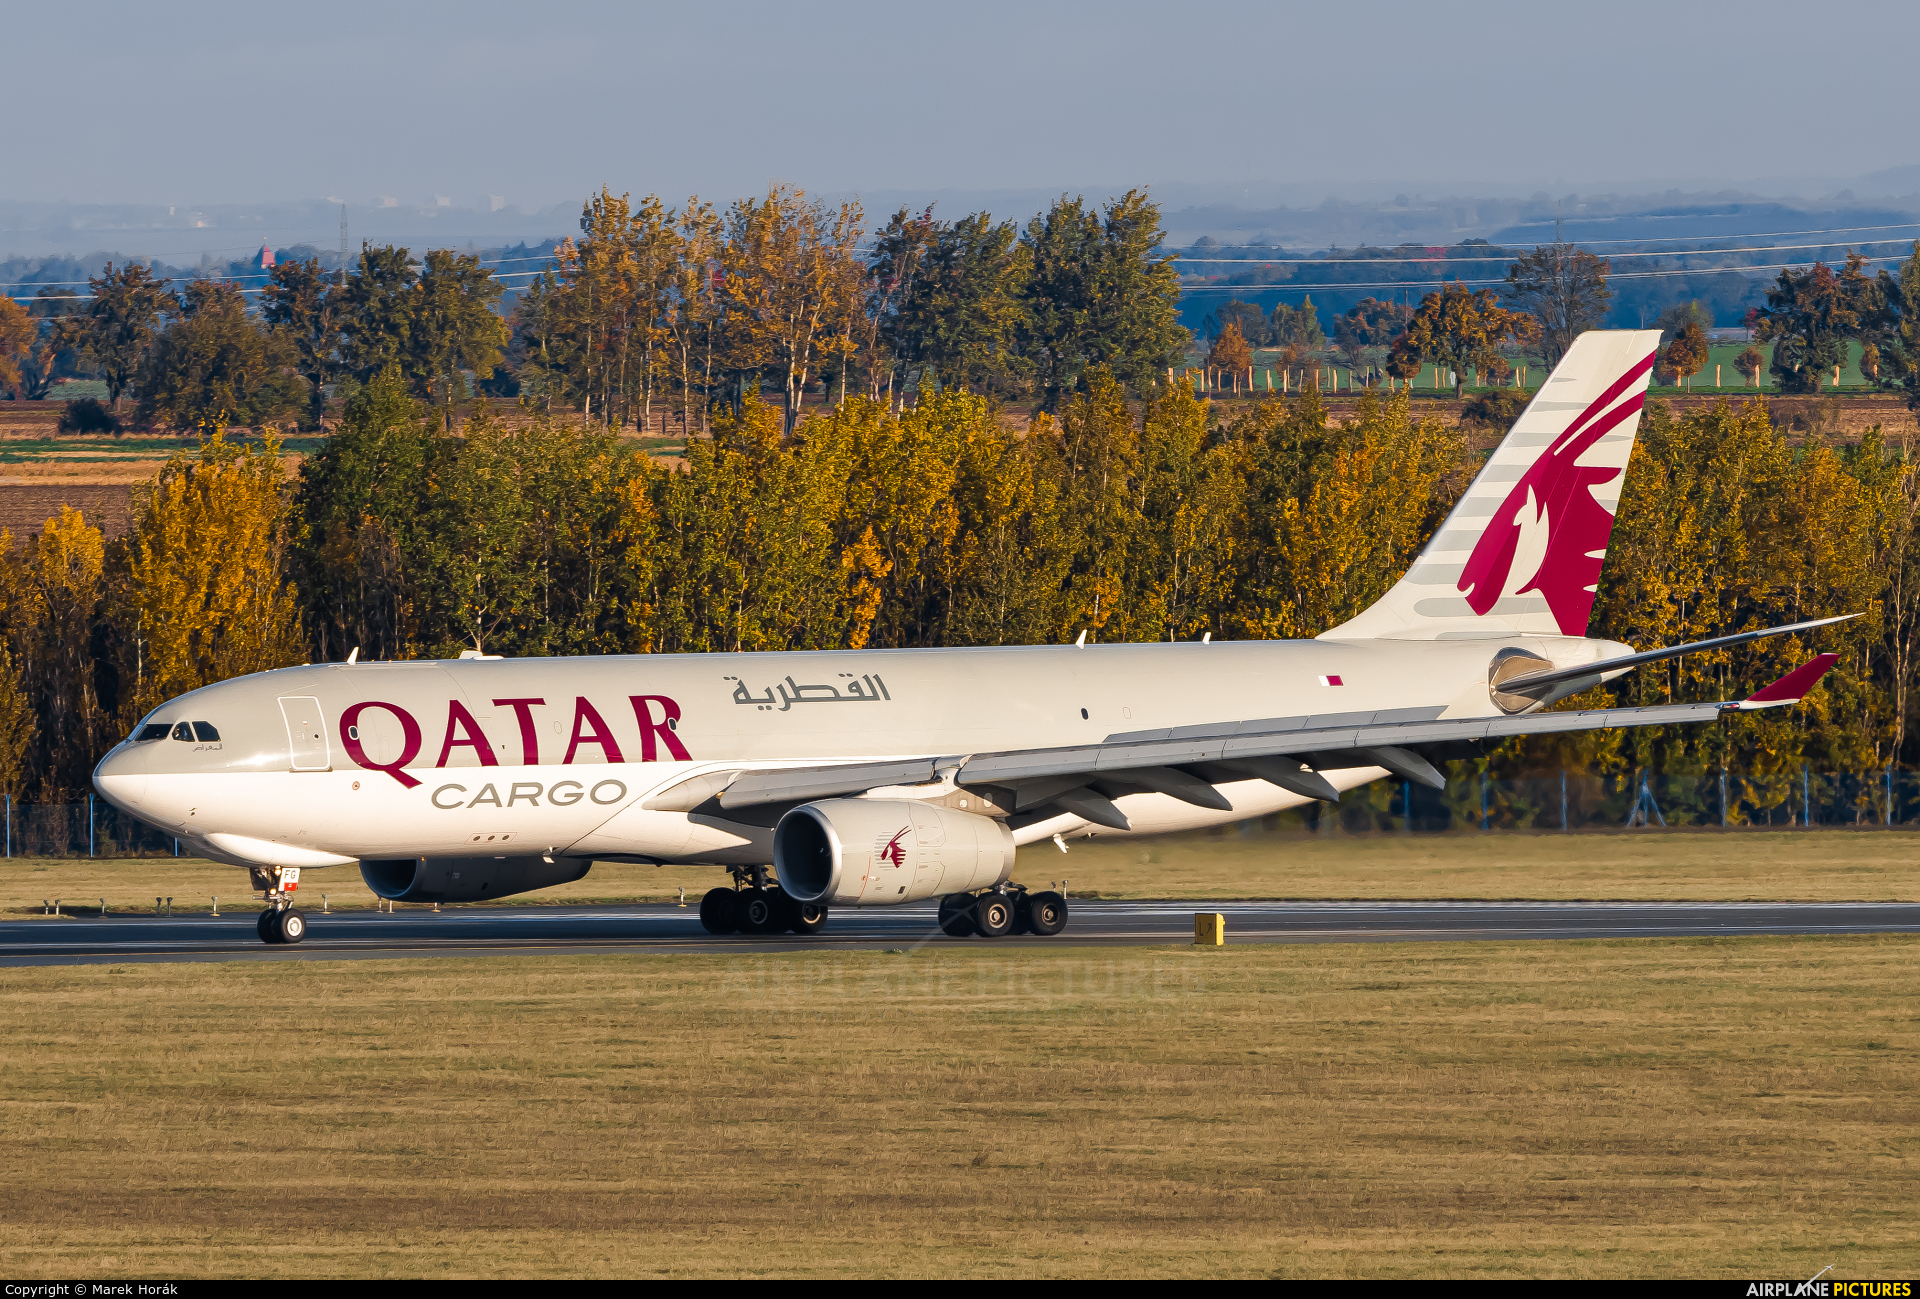 Qatar Airways Cargo A7-AFG aircraft at Prague - Václav Havel